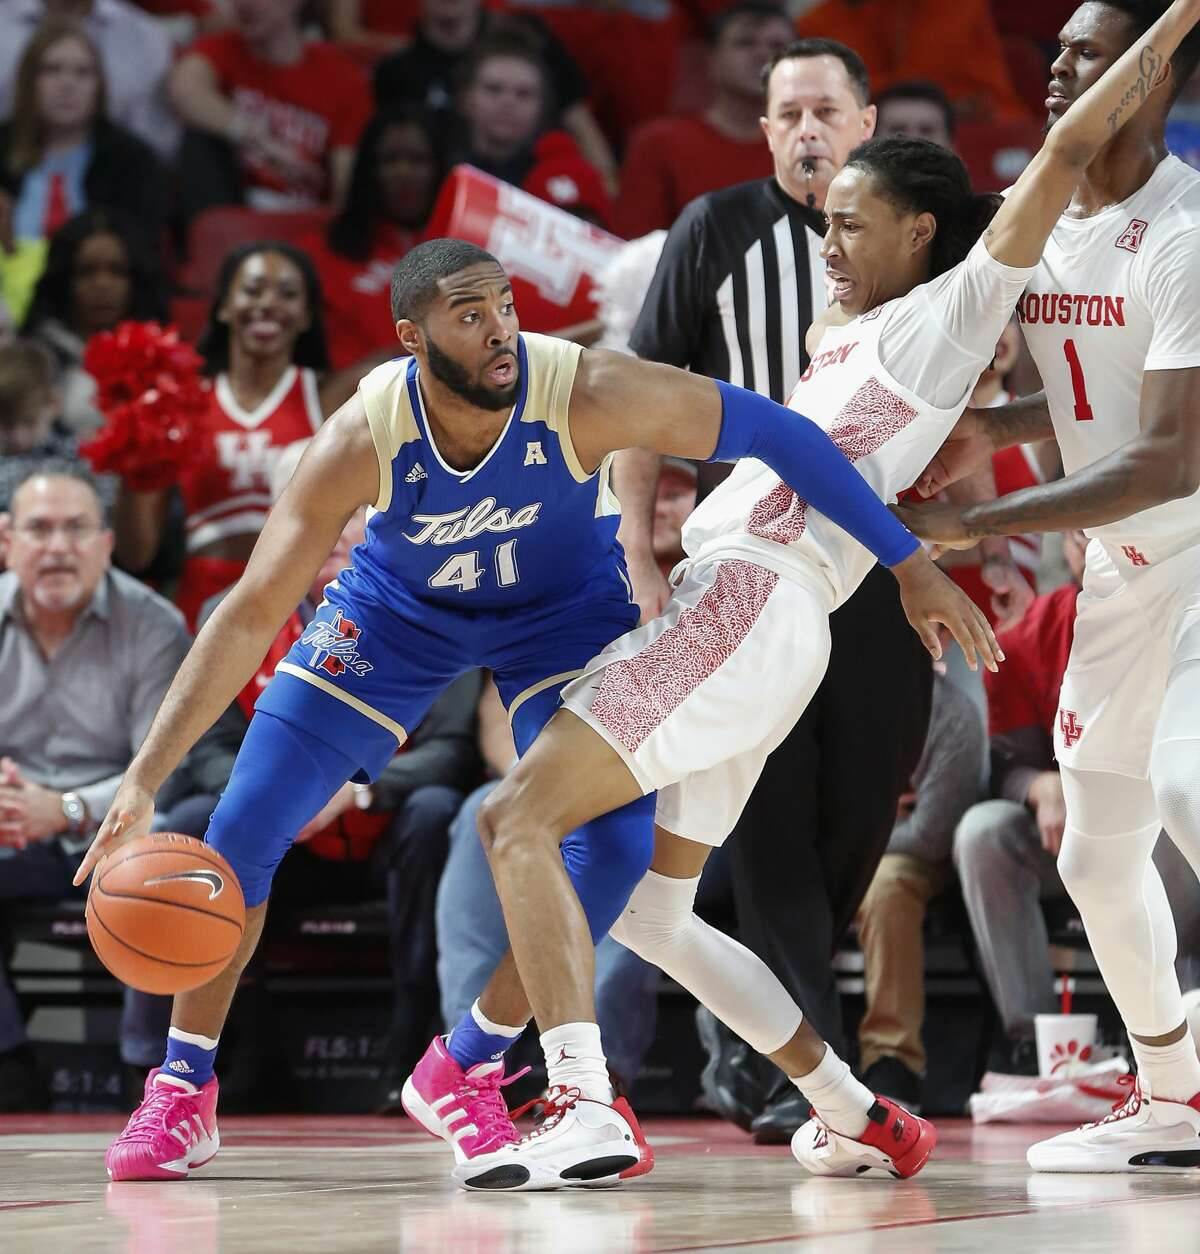 Tulsa Golden Hurricane forward Jeriah Horne (41) uses his arm to get around Houston Cougars guard Caleb Mills (2) during the first half of an NCAA basketball game at Fertitta Center Wednesday, Feb. 19, 2020, in Houston.